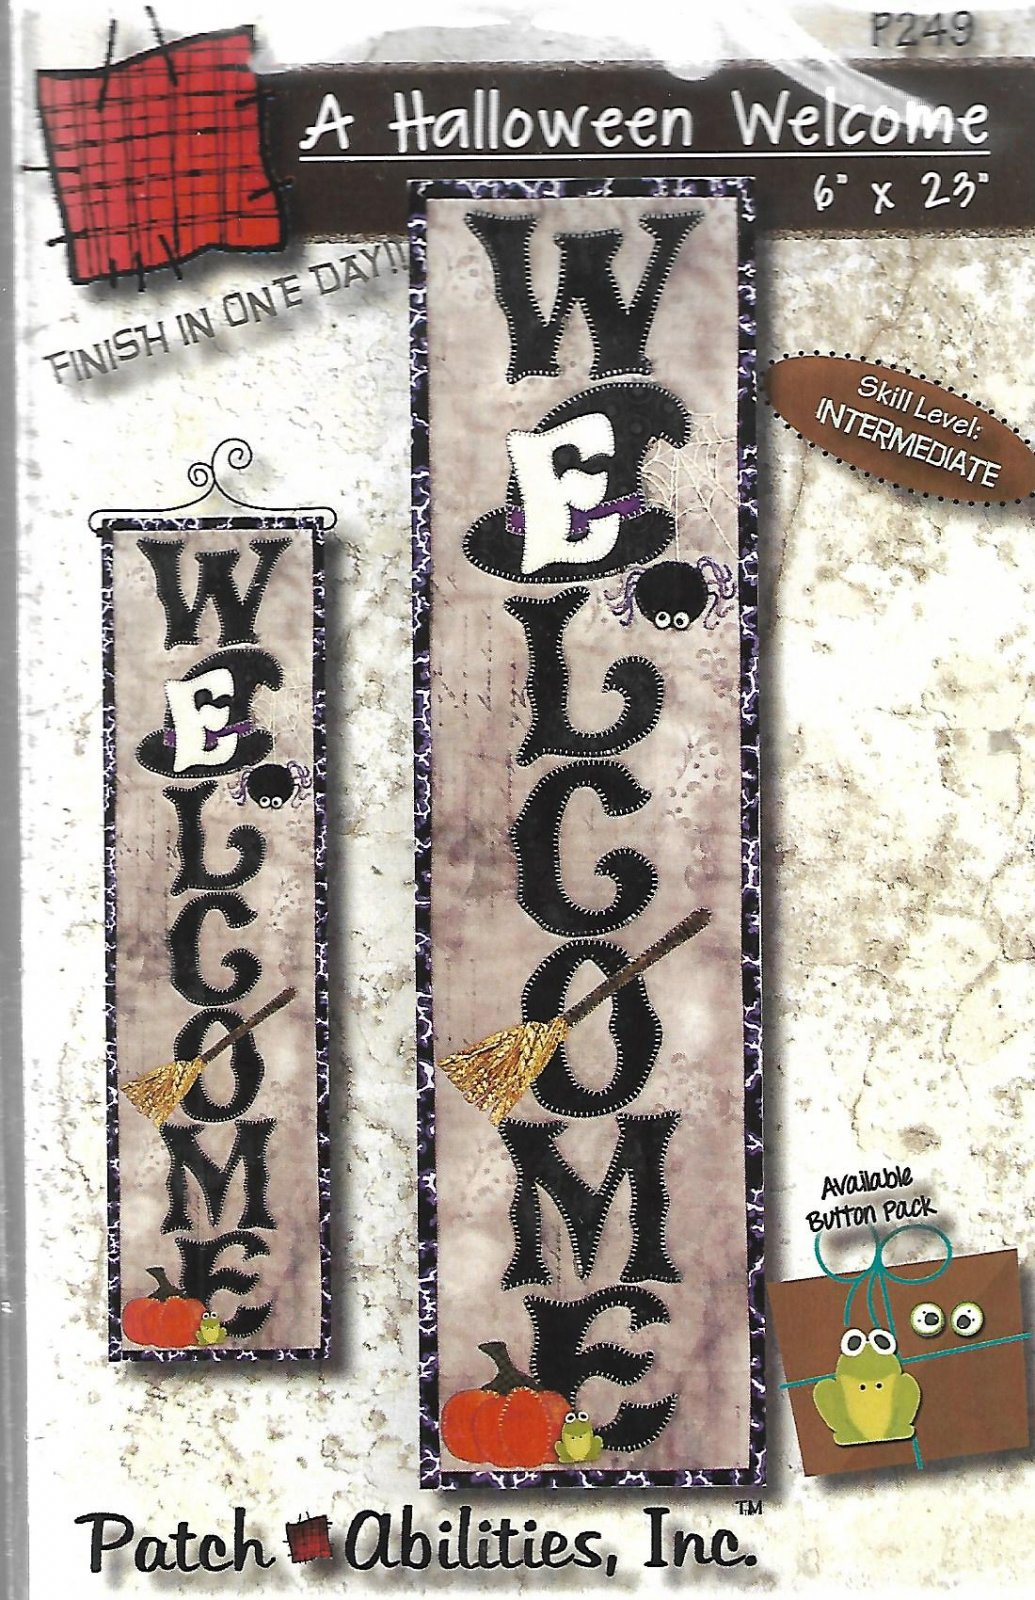 A Halloween Welcome P249 Plus button pack